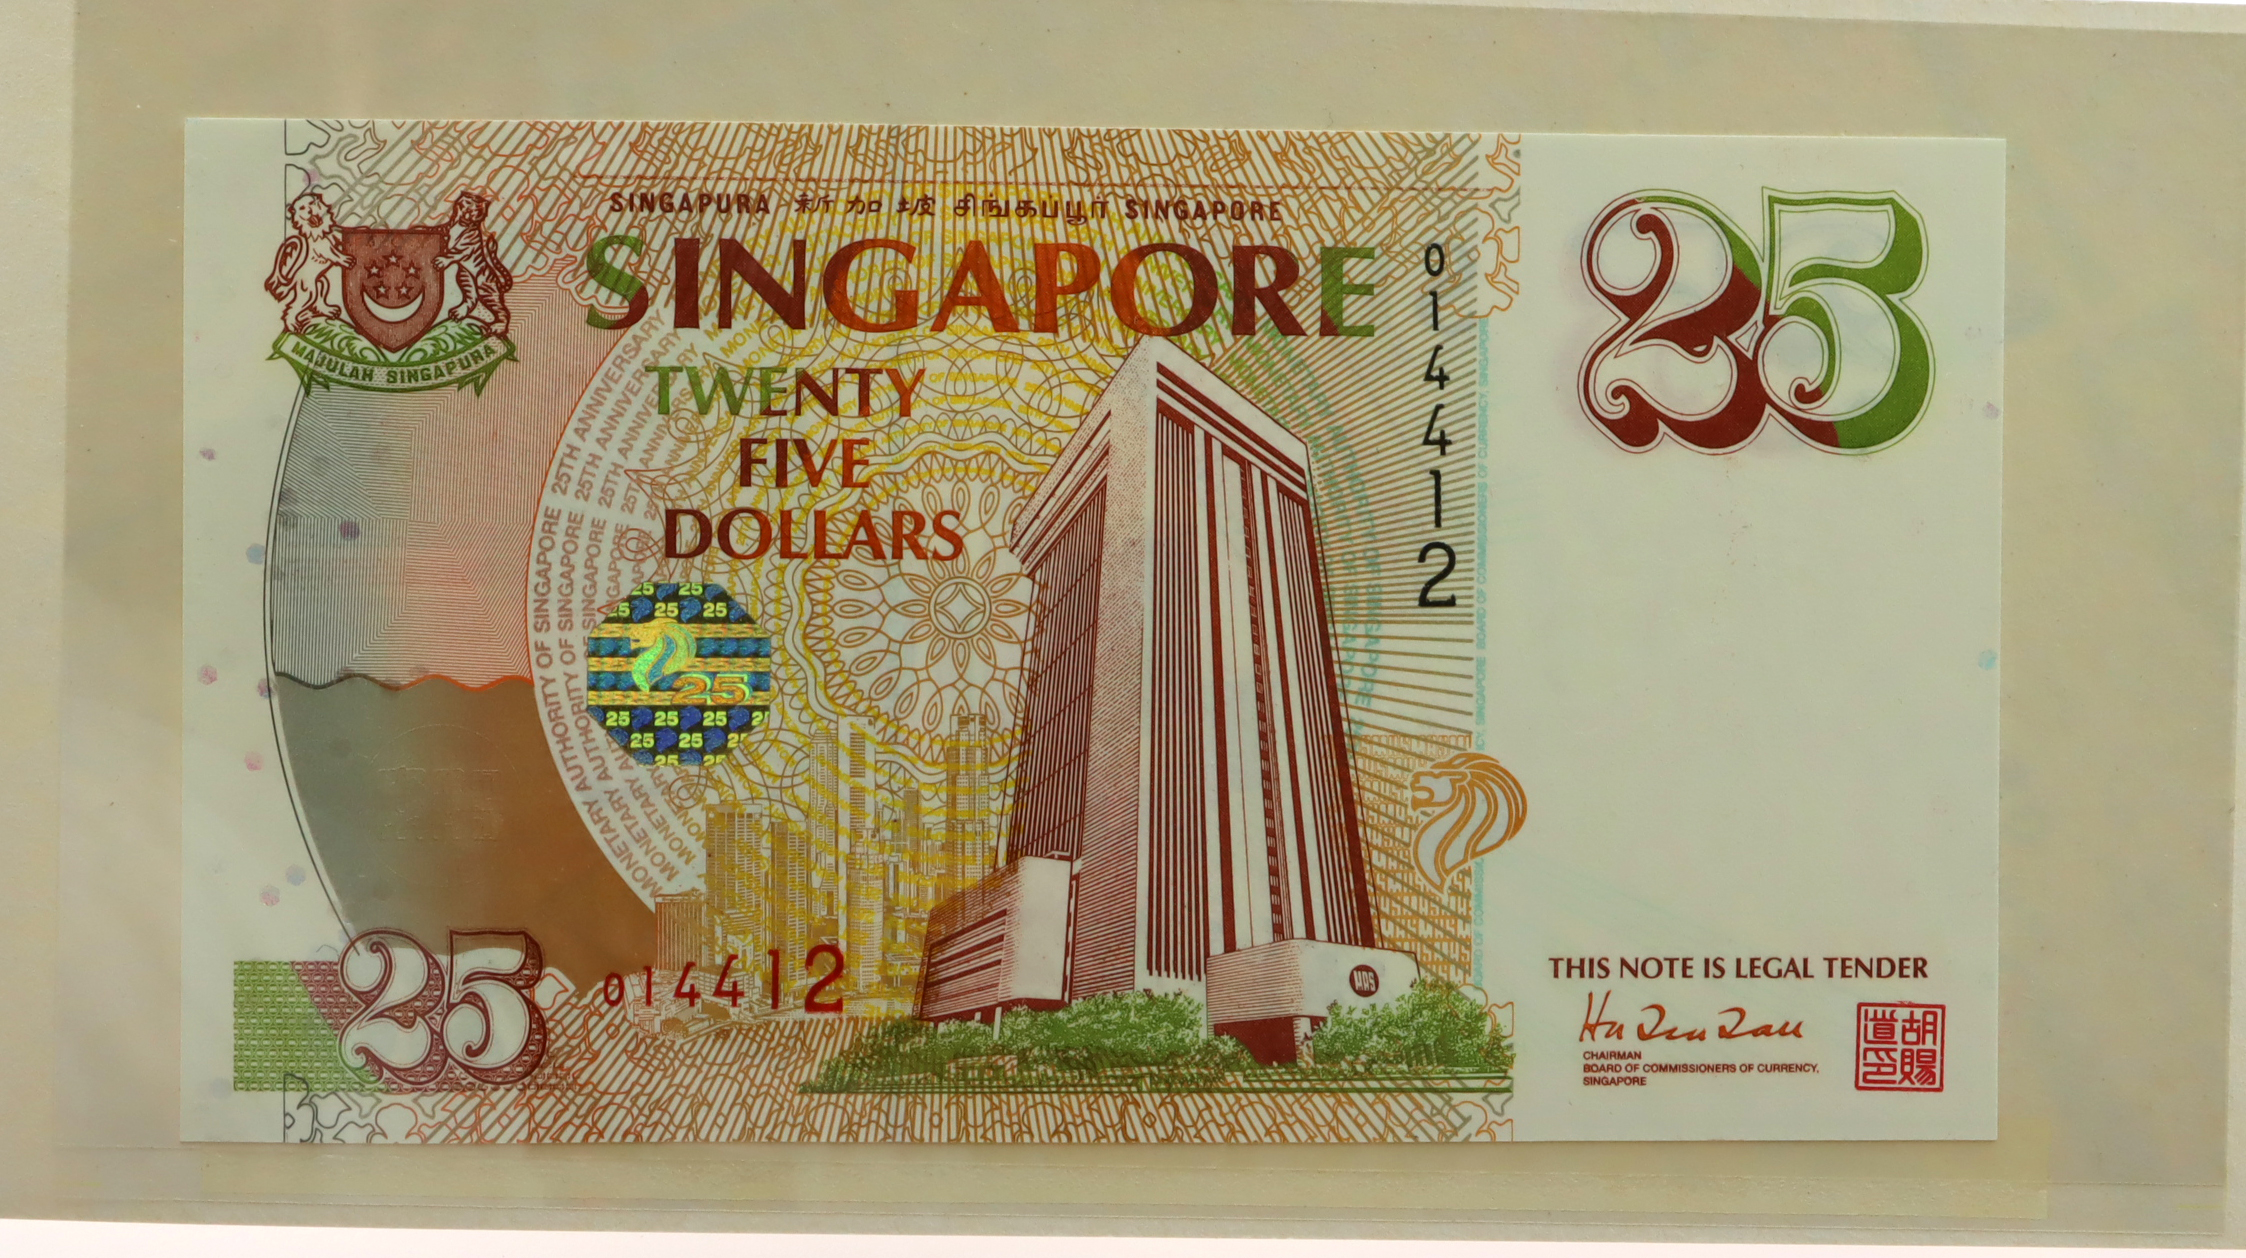 Singapore 25 Dollars issued 1996, Commemorative note 25th Anniversary of the Monetary Authority, - Image 2 of 2